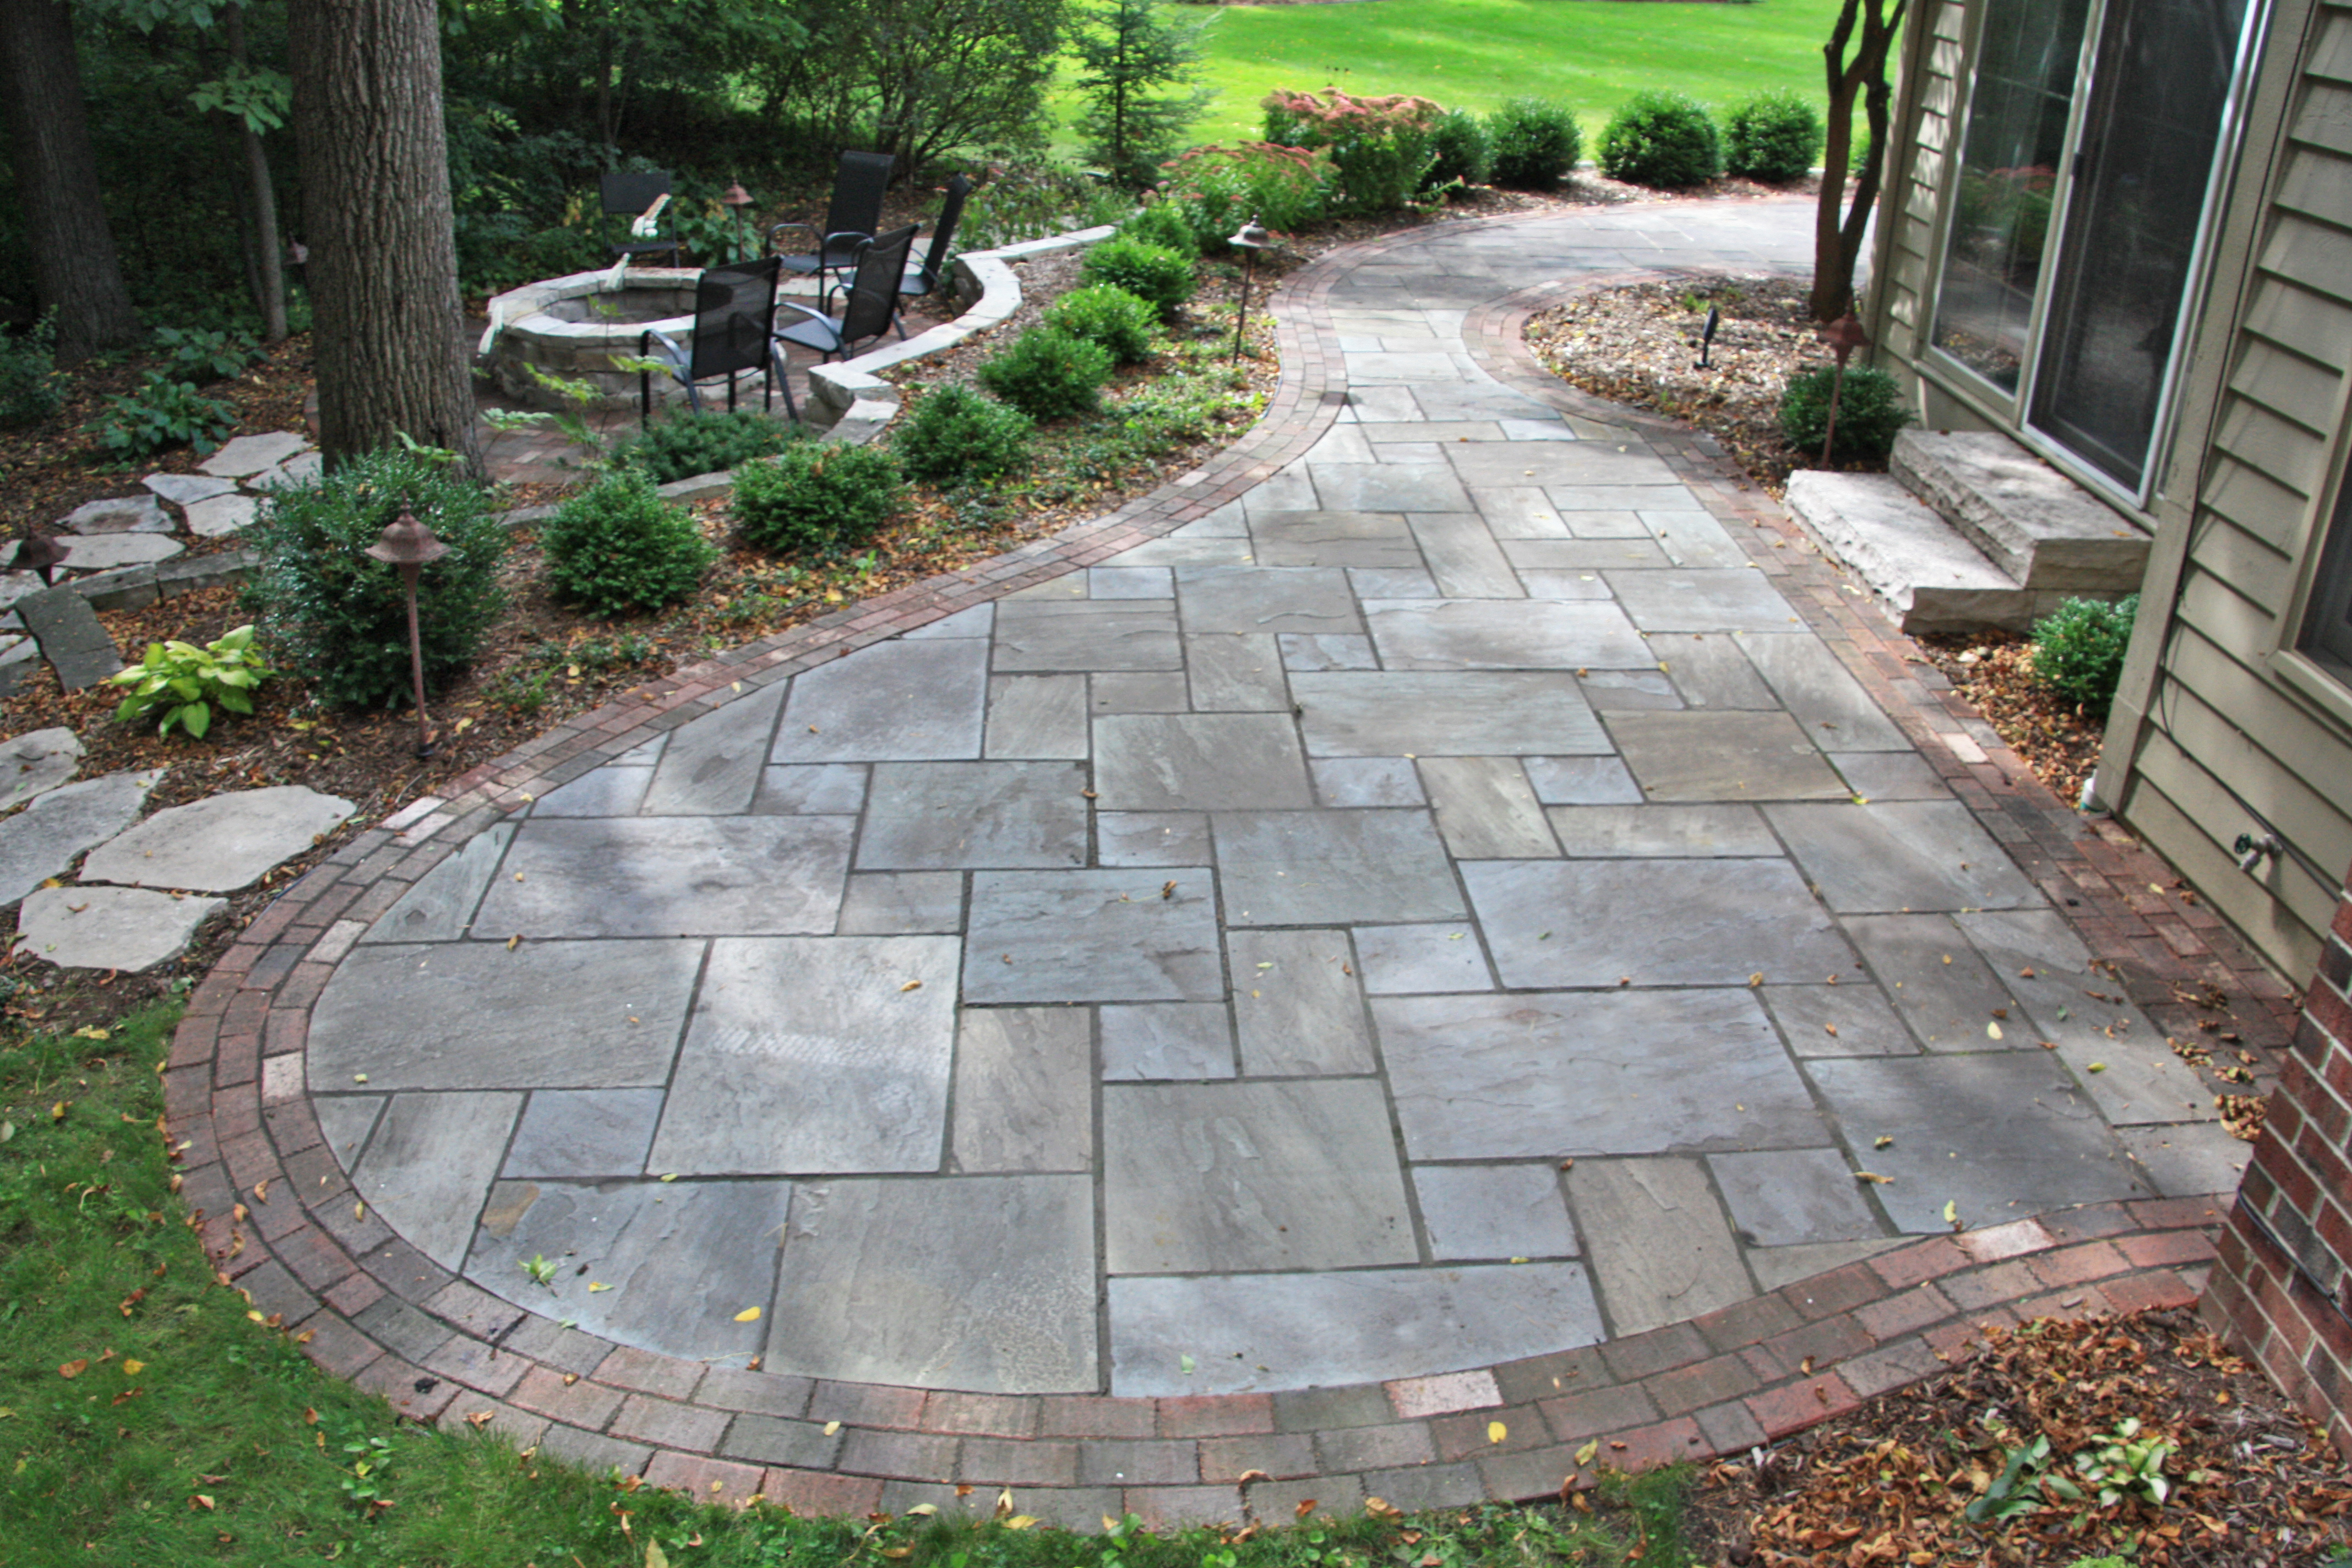 ... Side Patio. Bluestone Was Used For The New Patio And We Reused The  Bricks From The Former Patio As The Edging. A Firepit Area Was Added  Reusing The ...